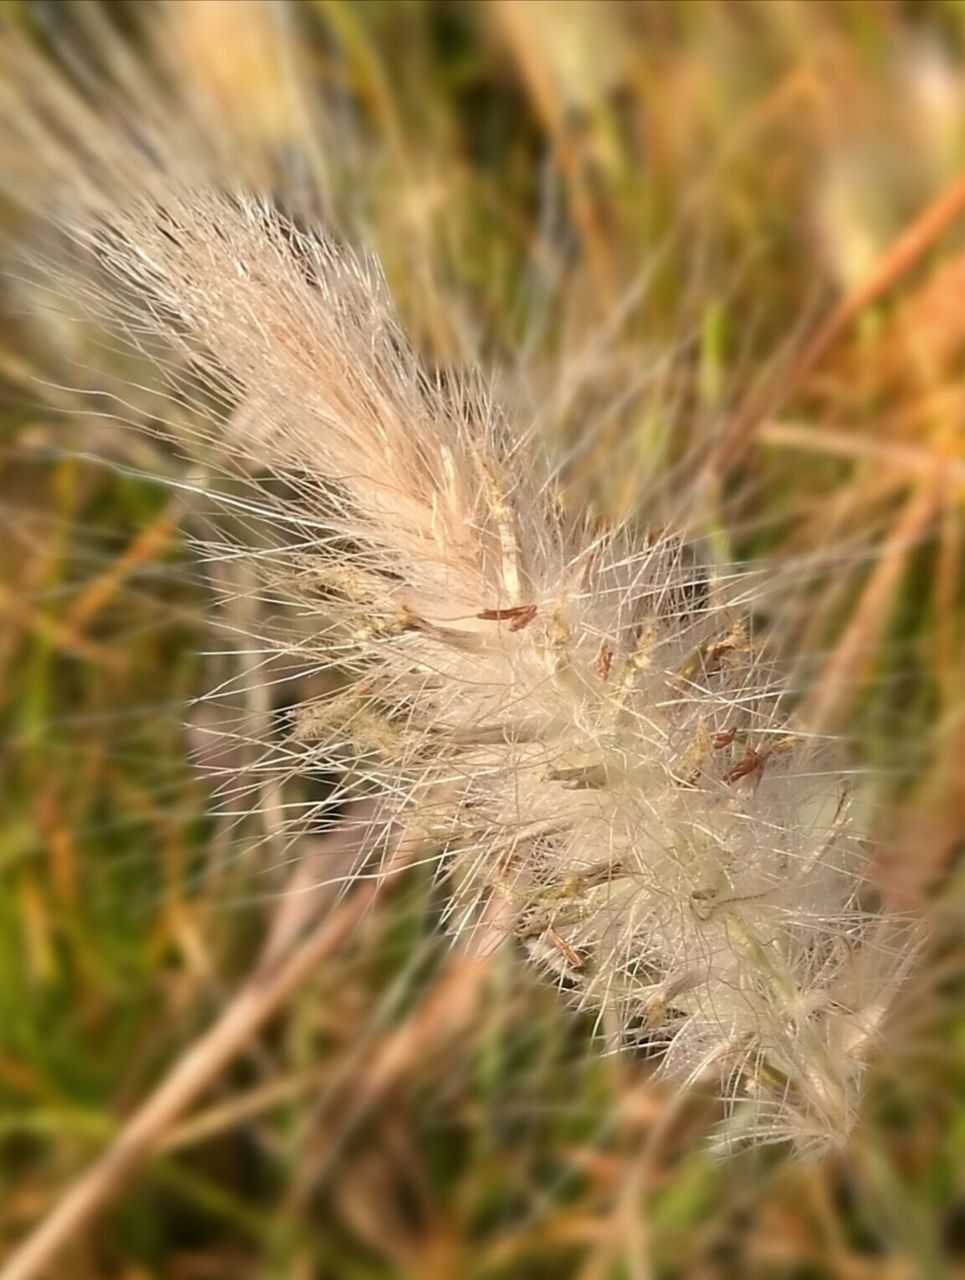 nature, growth, fragility, beauty in nature, plant, close-up, dandelion, softness, ear of wheat, no people, flower, focus on foreground, uncultivated, seed, field, day, cereal plant, wheat, lightweight, agriculture, outdoors, freshness, flower head, grass